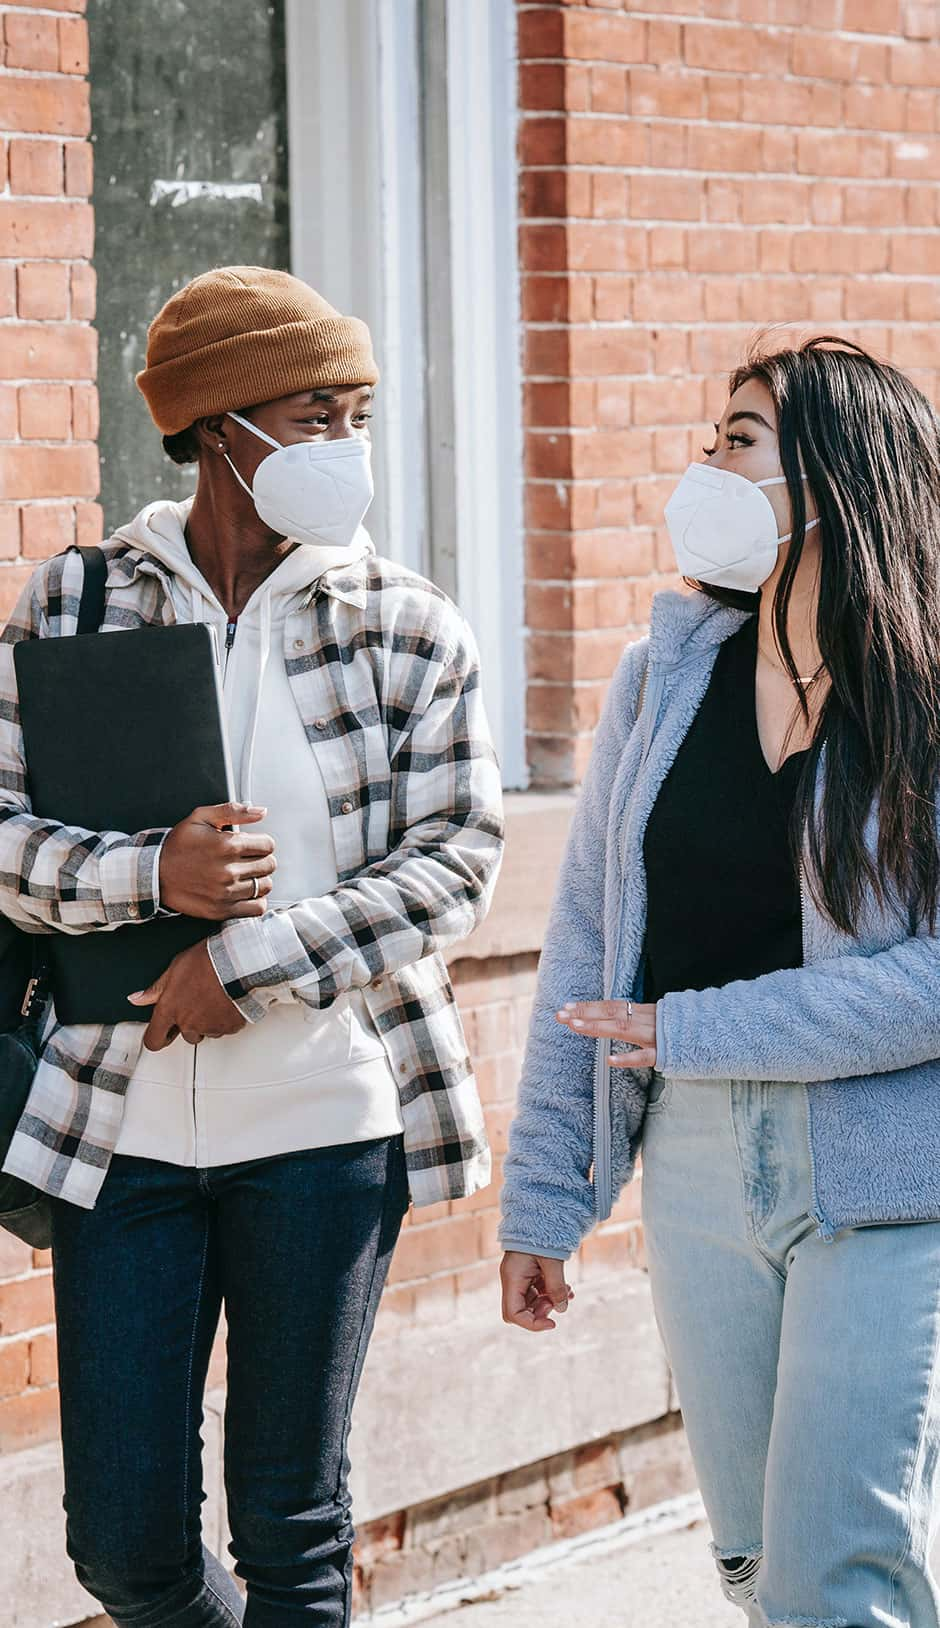 Two students wearing maskings walking together.